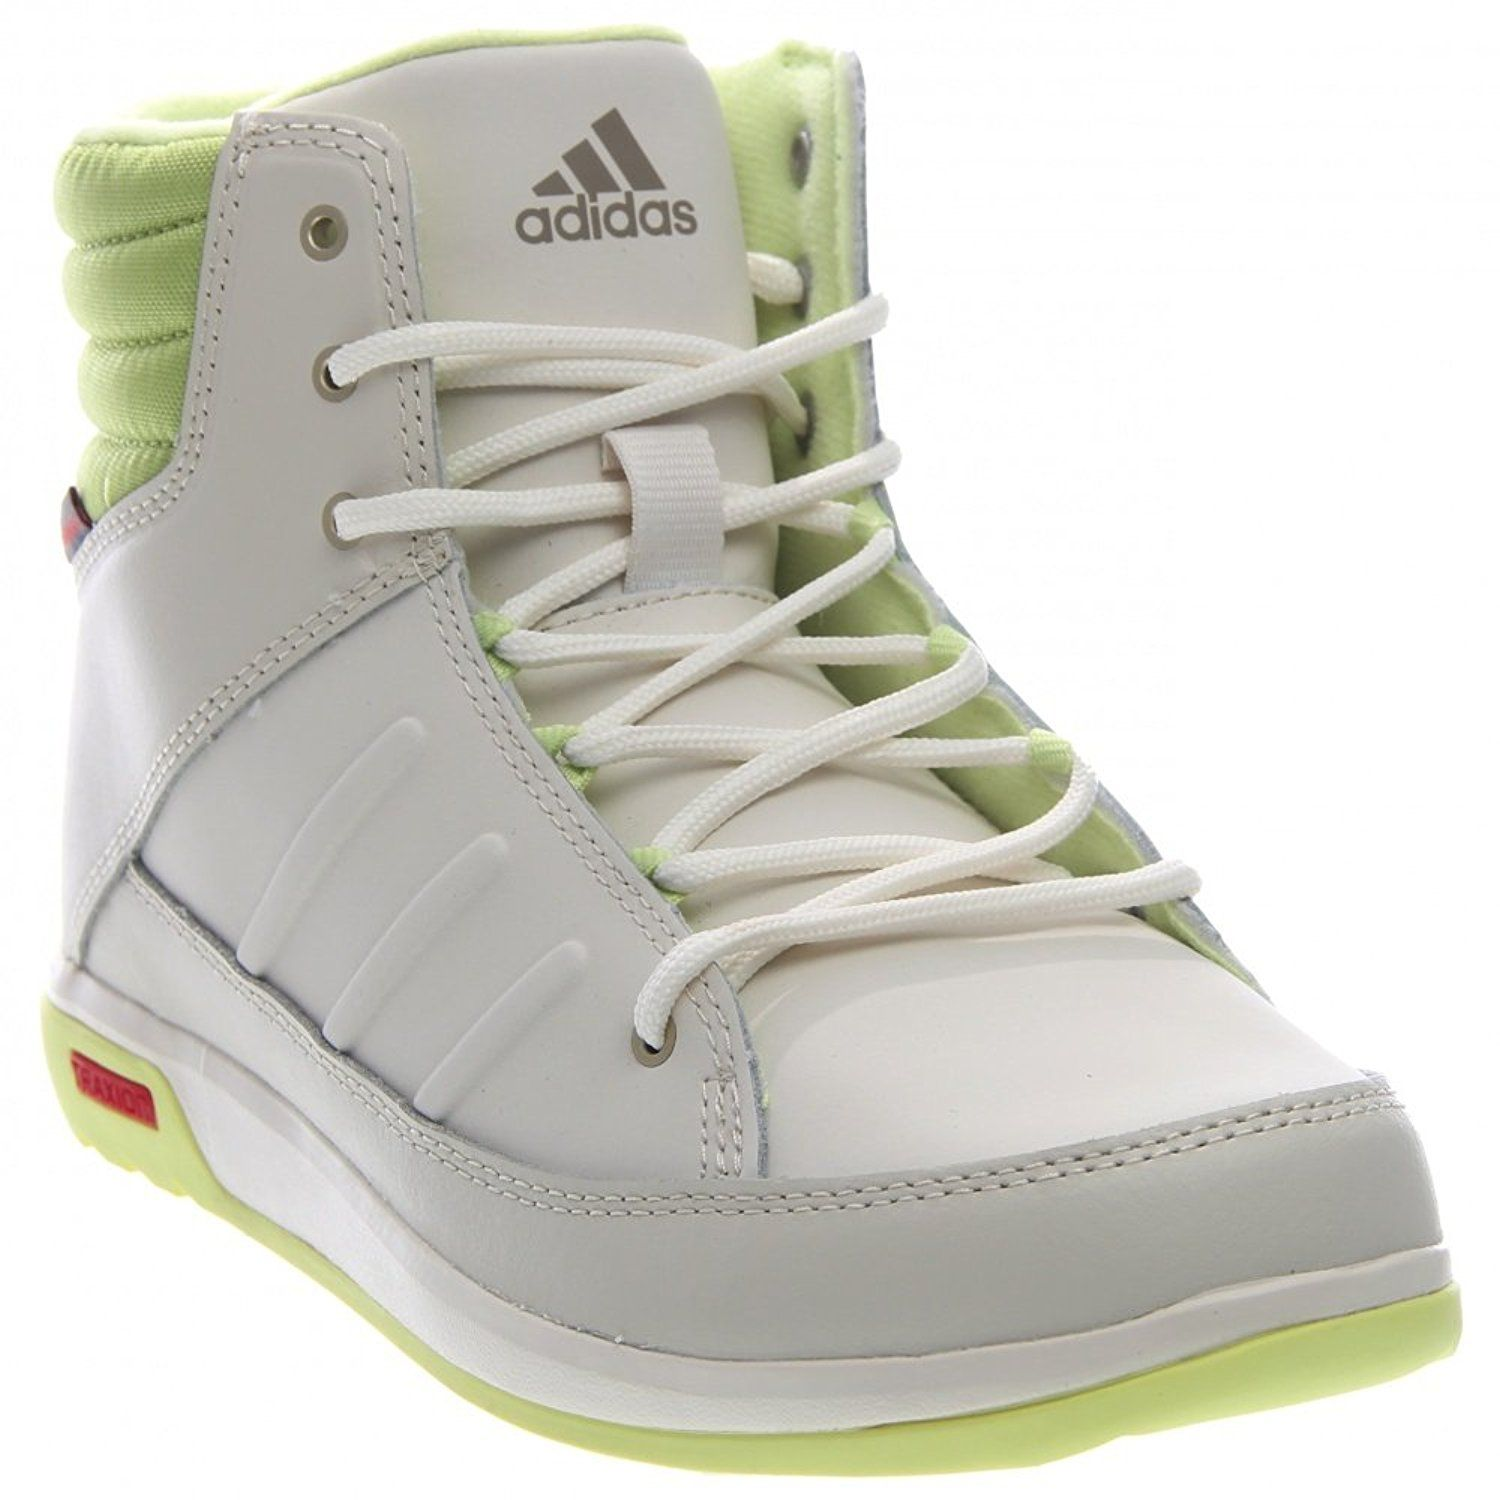 adidas climawarm womens shoes